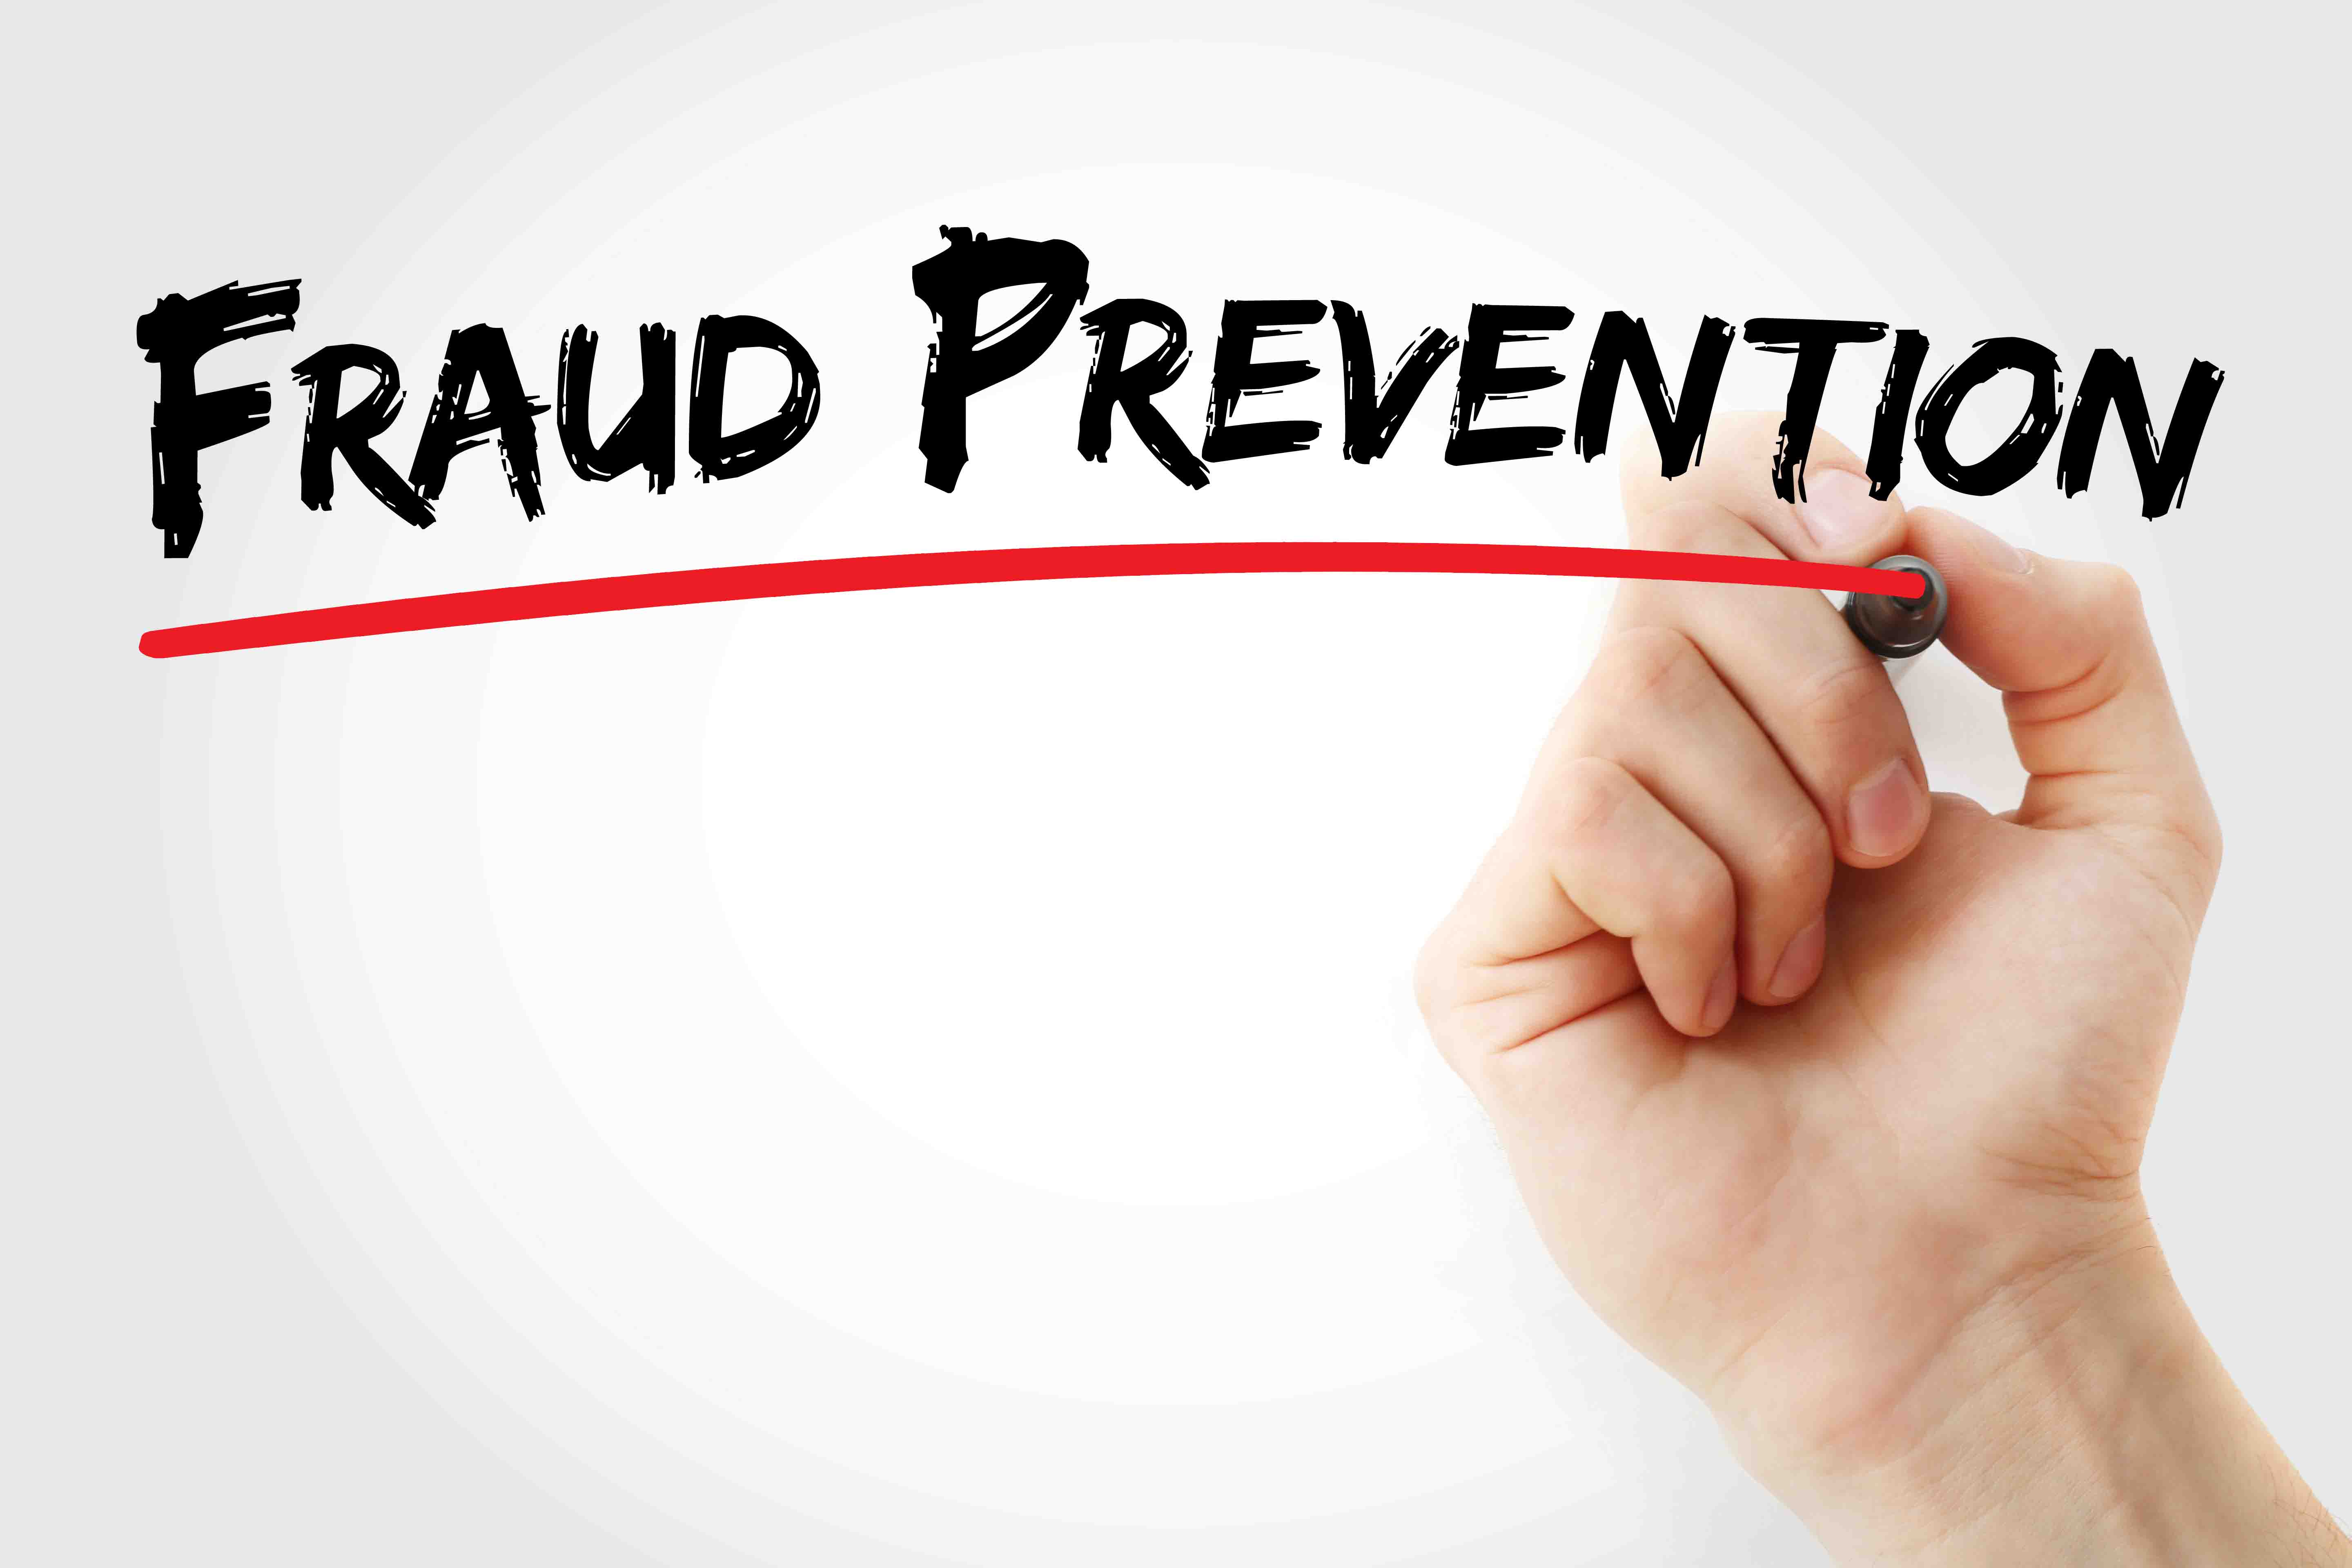 Fraud Prevention in writing